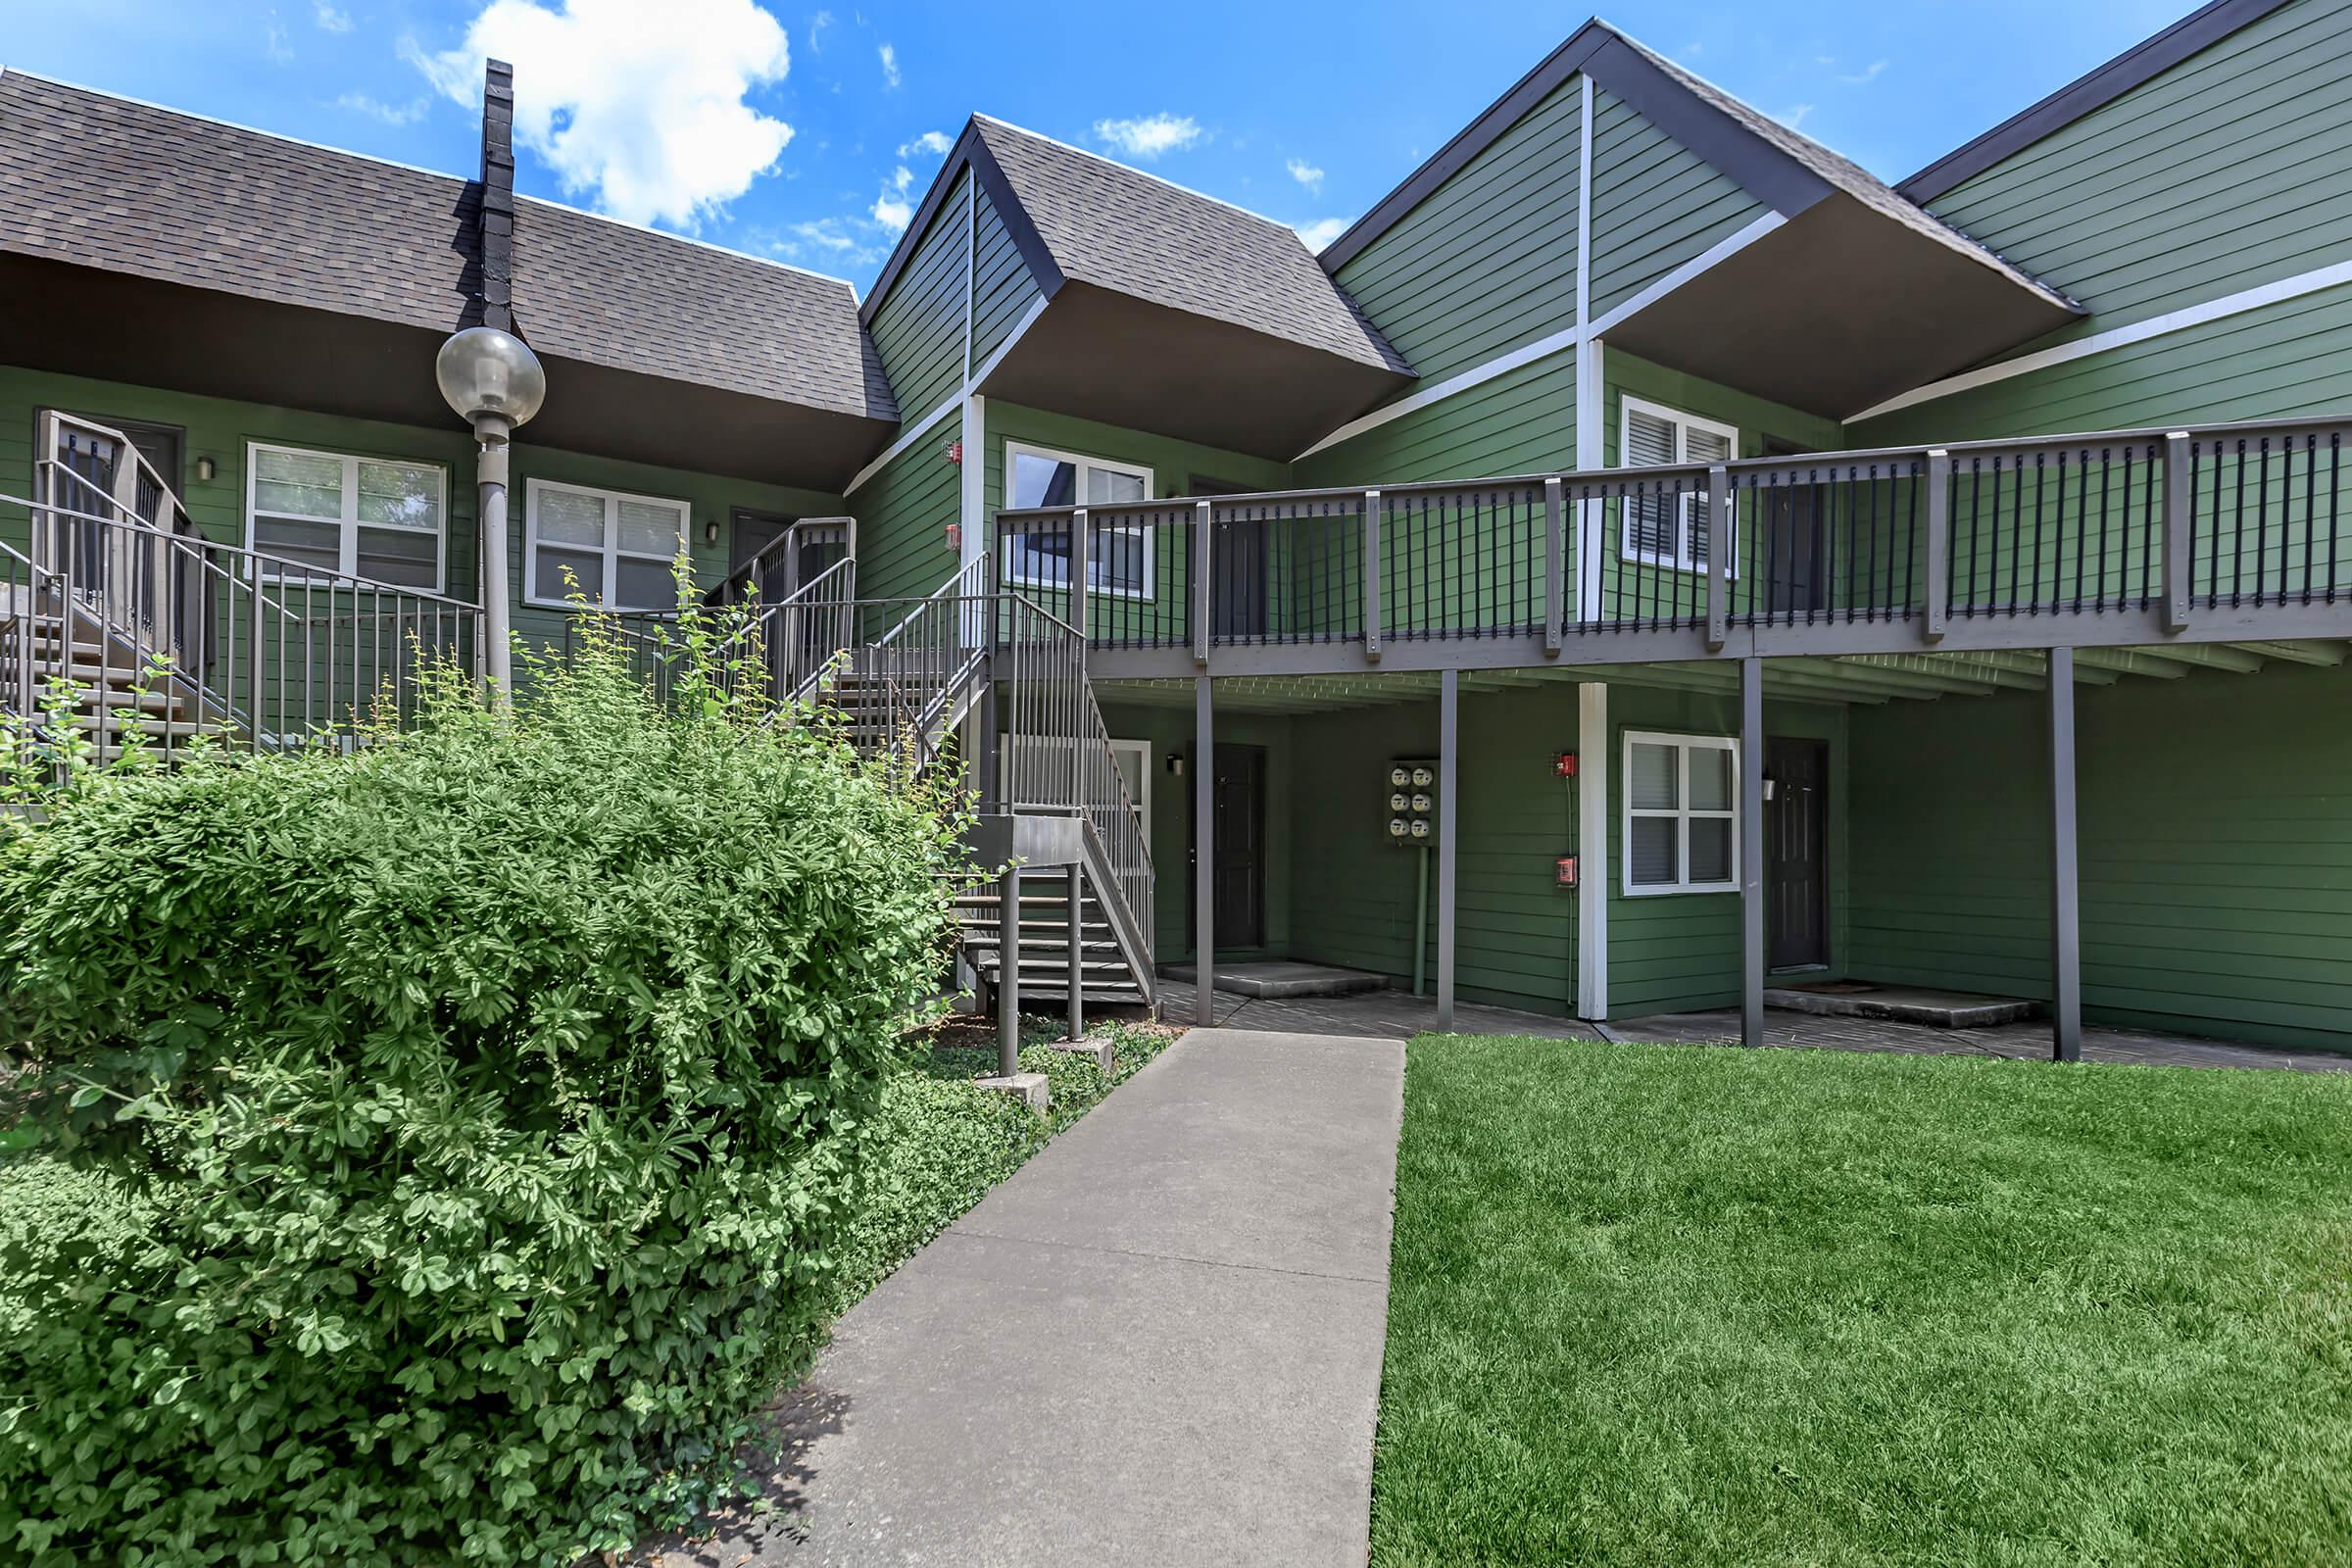 beautiful homes at Sunrise Apartments in Nashville, Tennessee